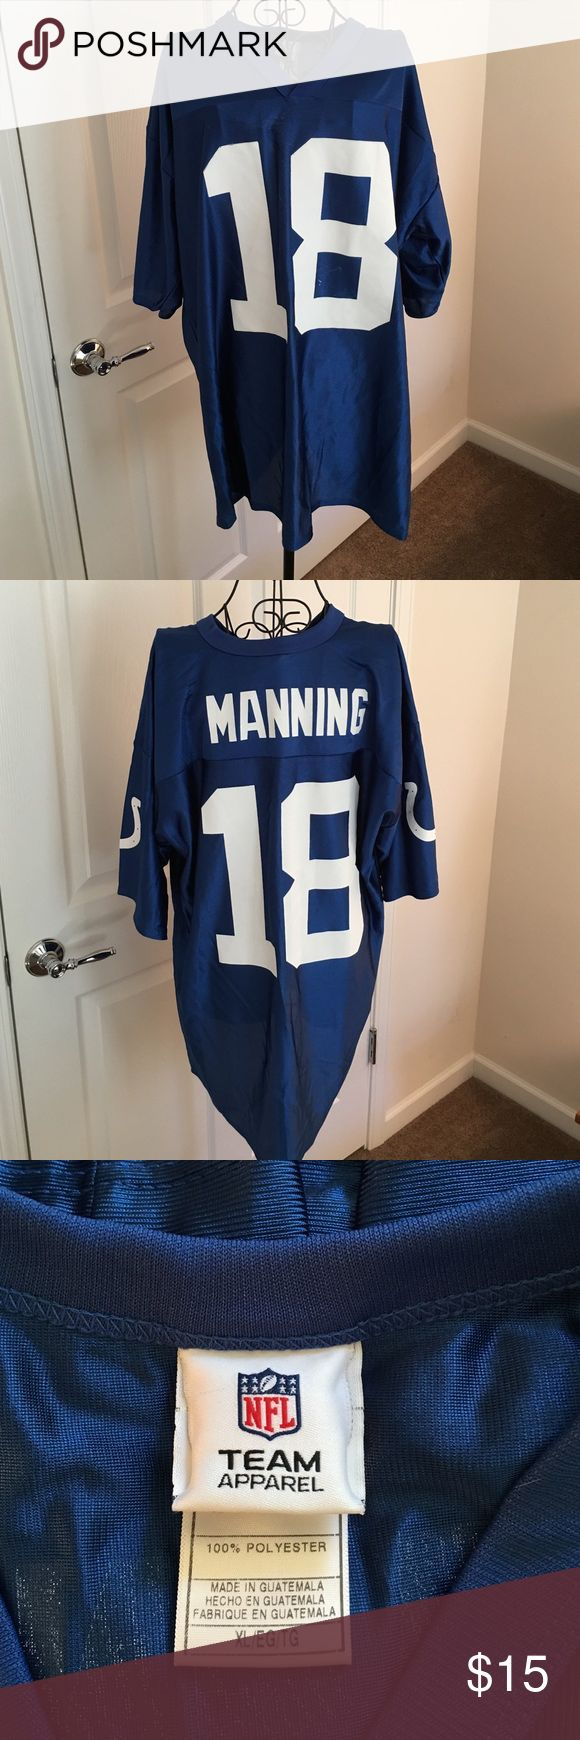 Colts bathroom decor - Colts Bathroom Decor Nfl Colts Manning Jersey